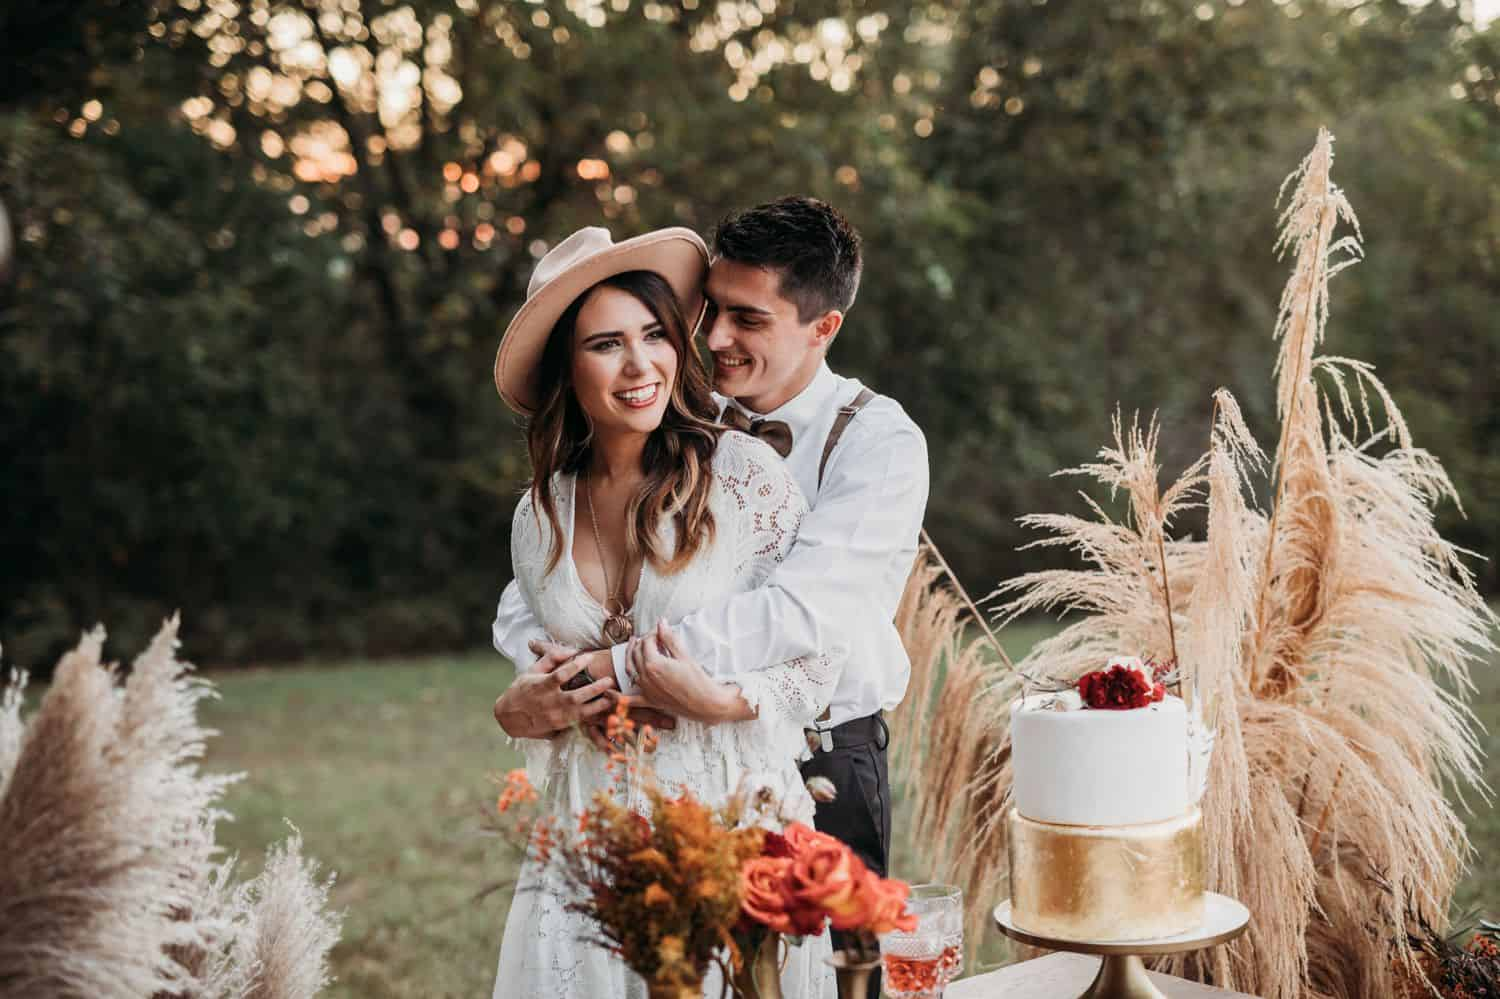 A boho bride and groom hug each other in front of their cake table